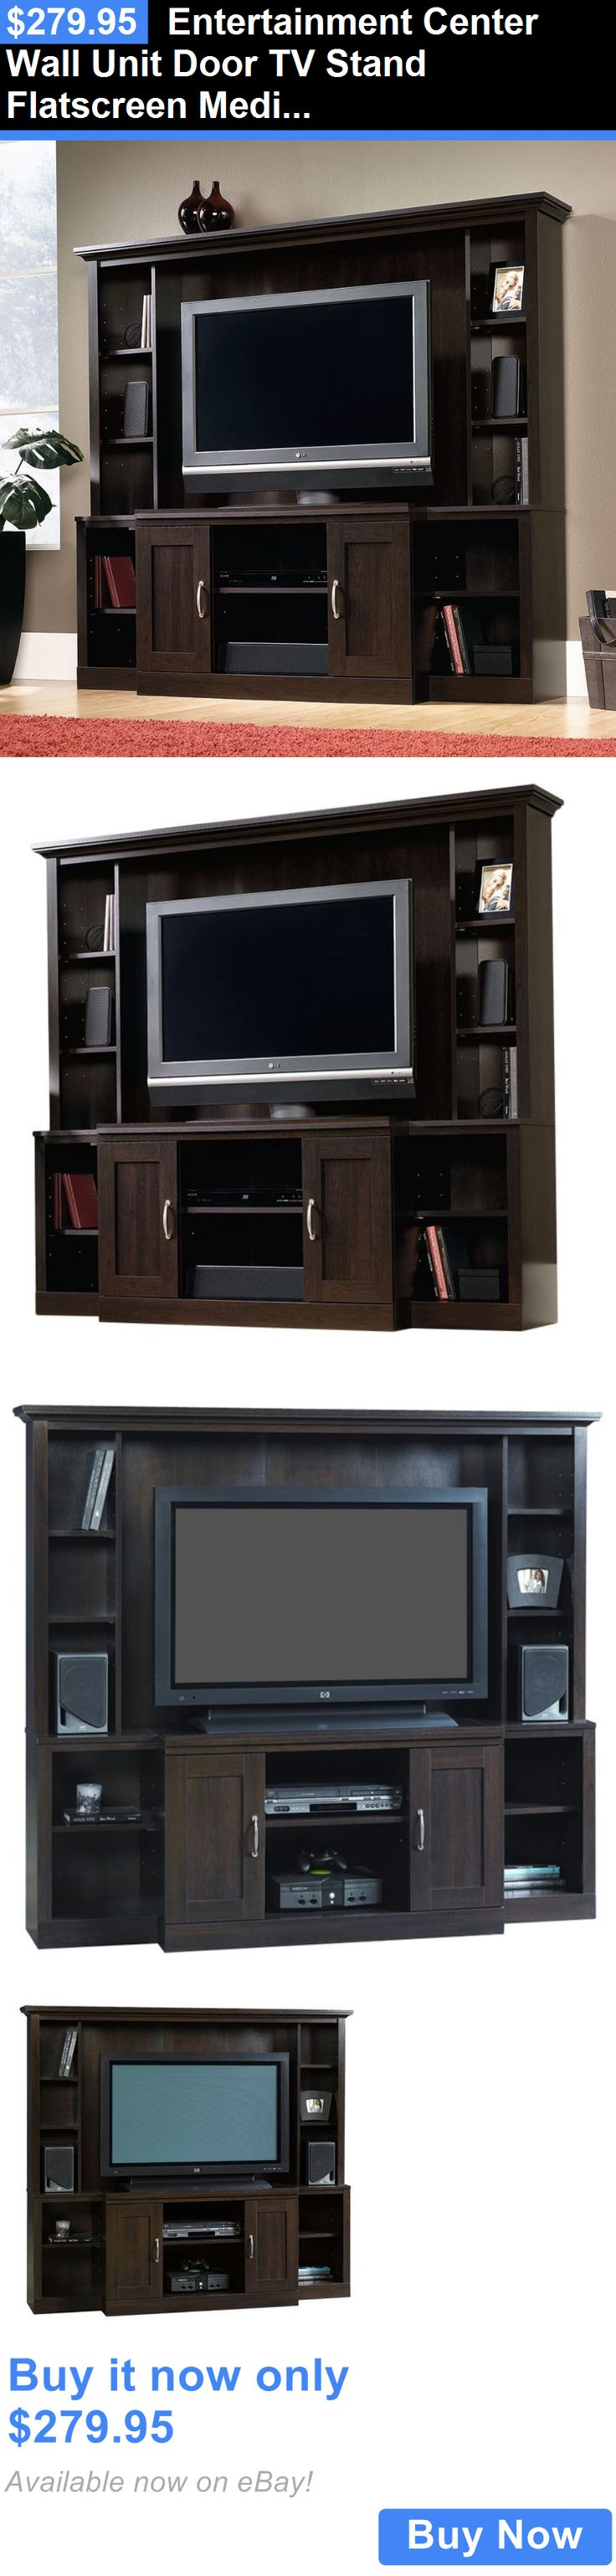 Entertainment Units TV Stands: Entertainment Center Wall Unit Door Tv Stand Flatscreen Media Console Cabinet BUY IT NOW ONLY: $279.95